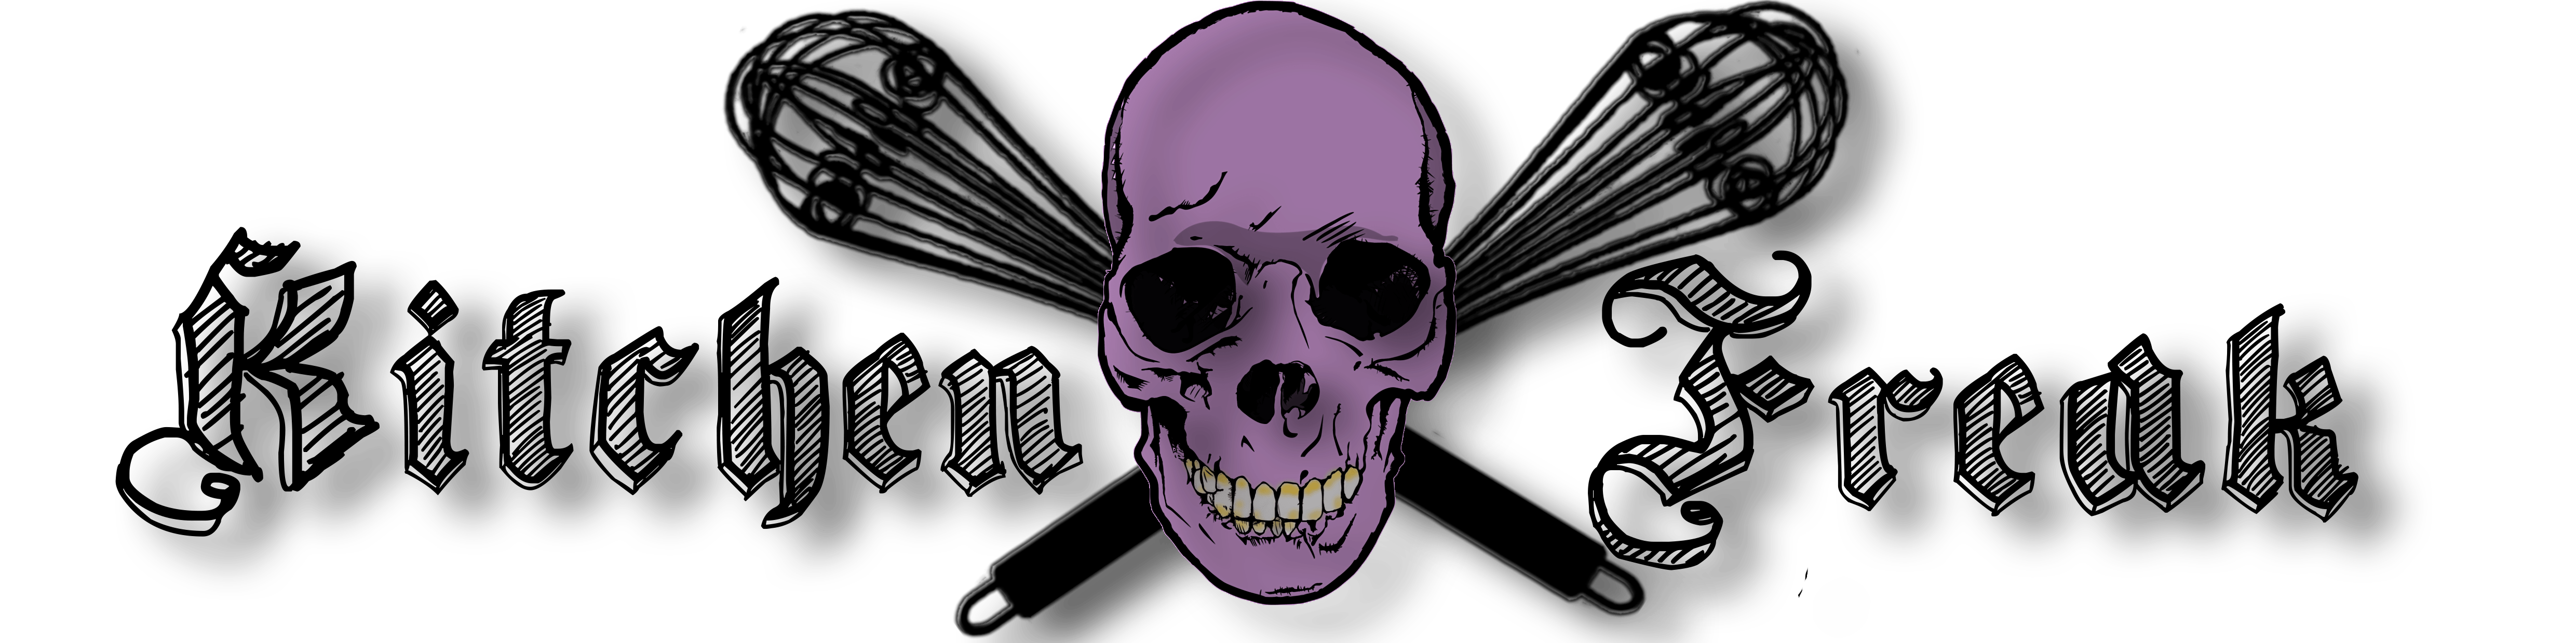 cropped-skull-generic-2.png